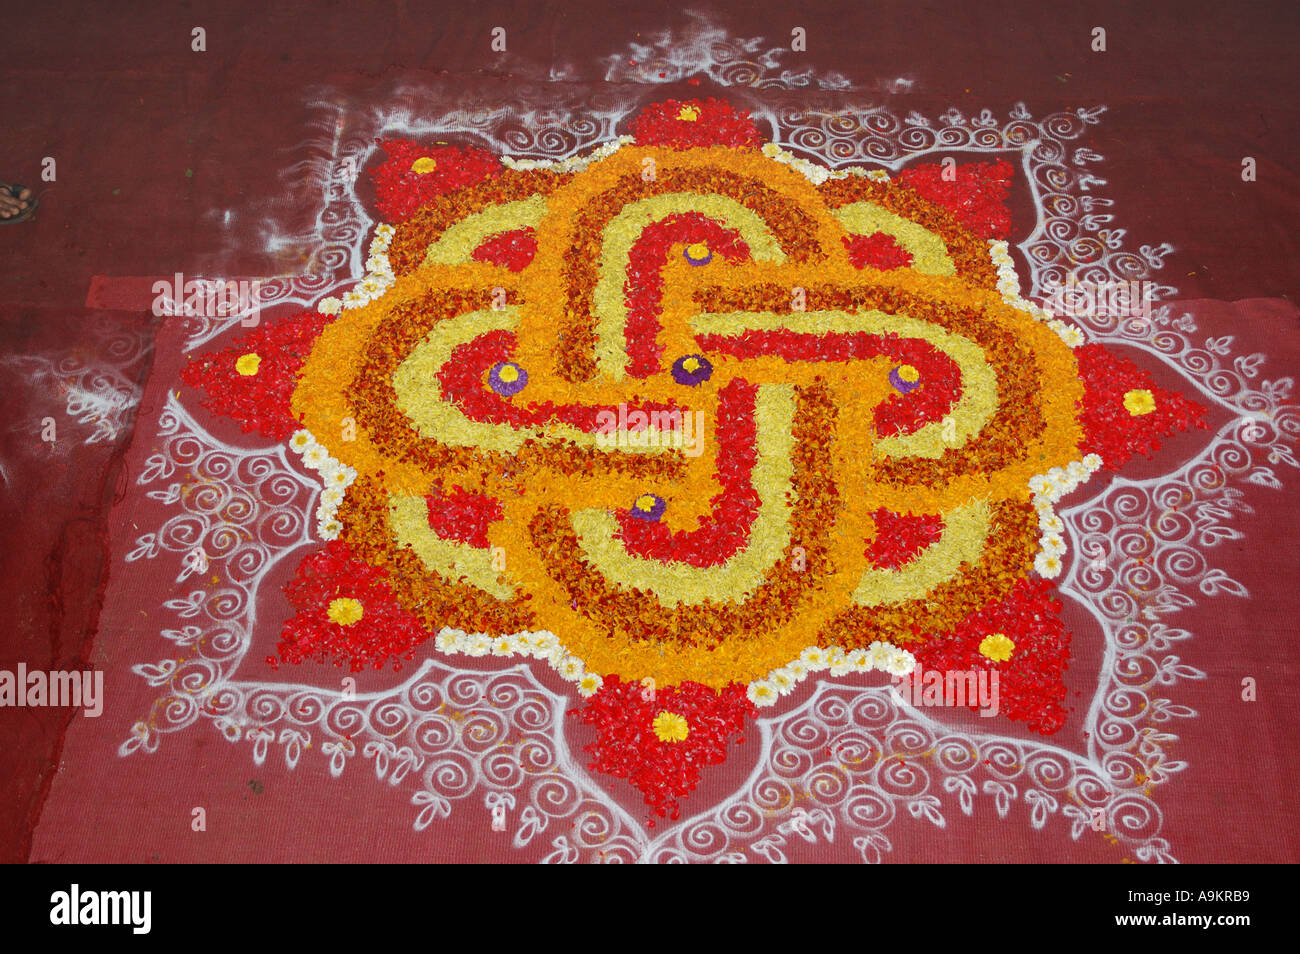 Indian Festival Decoration Ang99307 Indian Festival Auspicious Door Entrance Flower